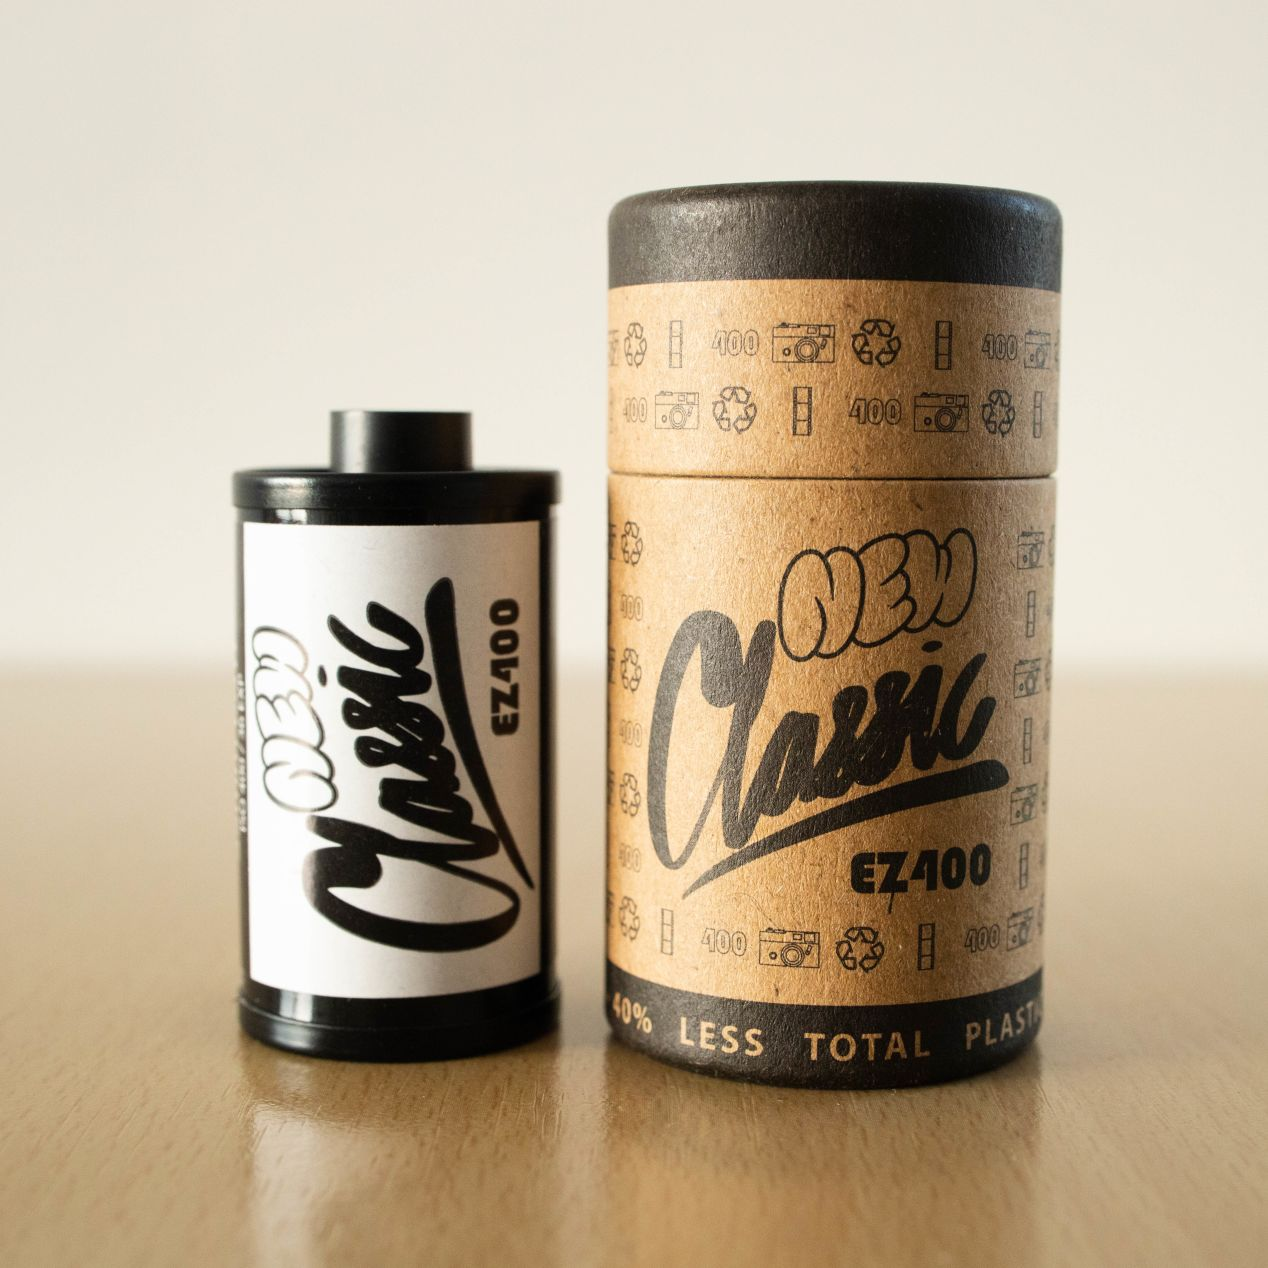 New Classic EZ-400 monochrome 35mm film next to its cardboard sleeve — the only piece of packaging you'll need to safely store your canister. Image courtesy of New Classic.